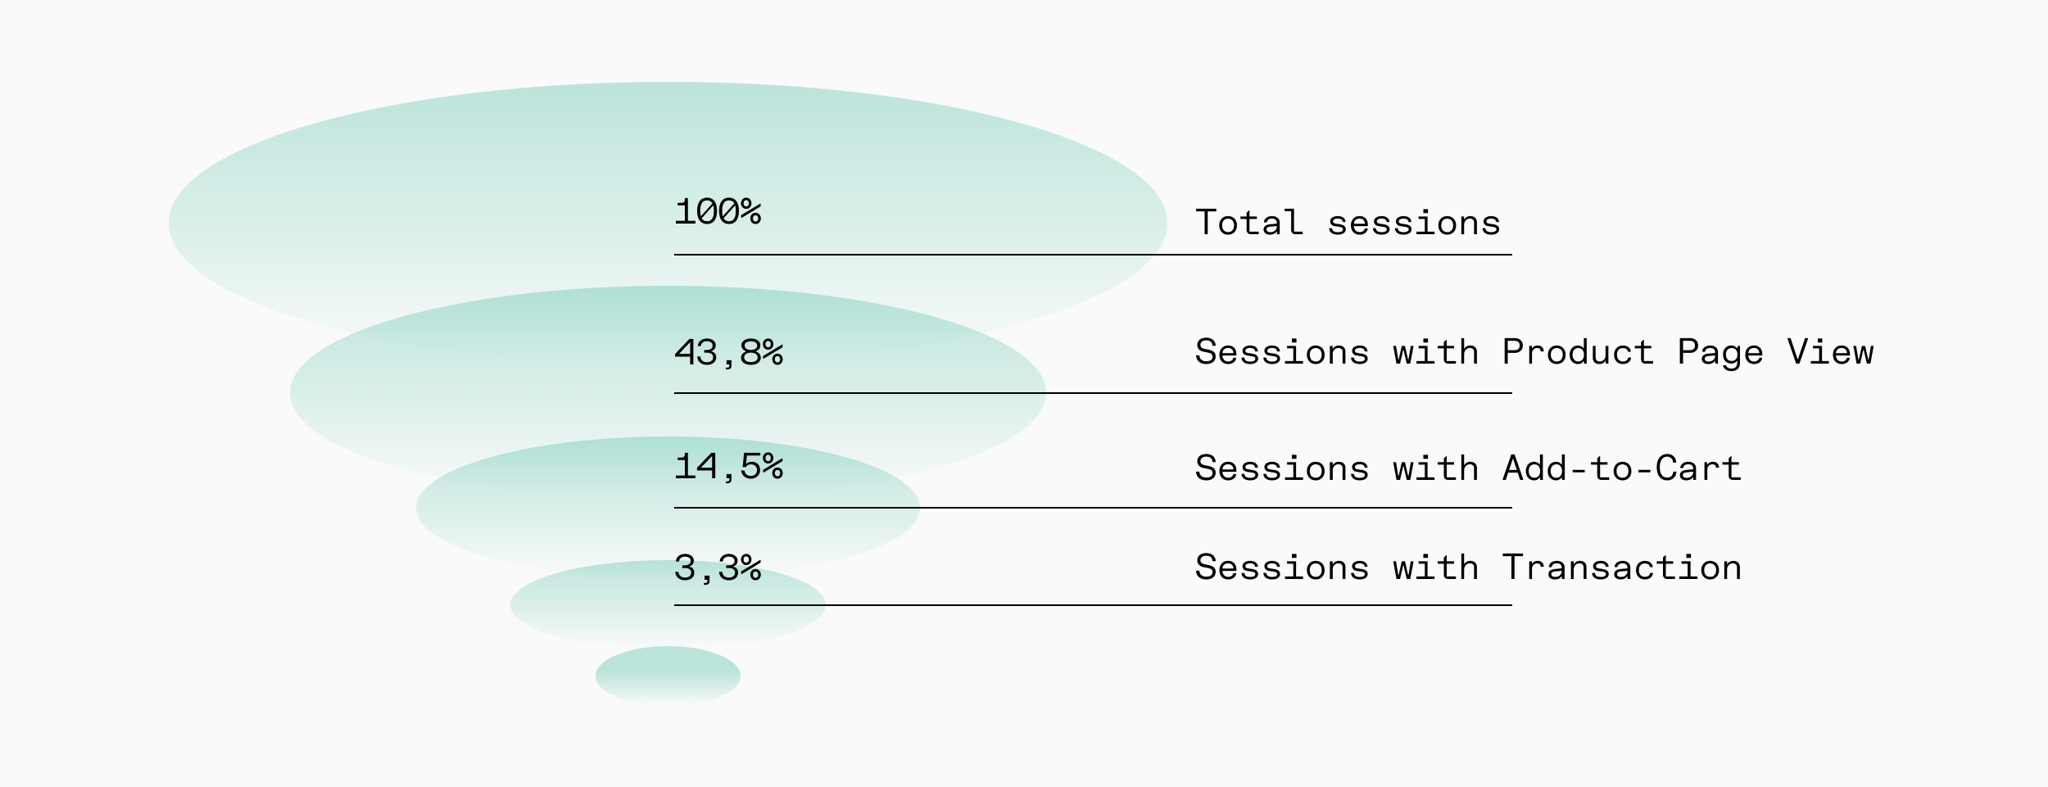 Types of sessions per actions taken